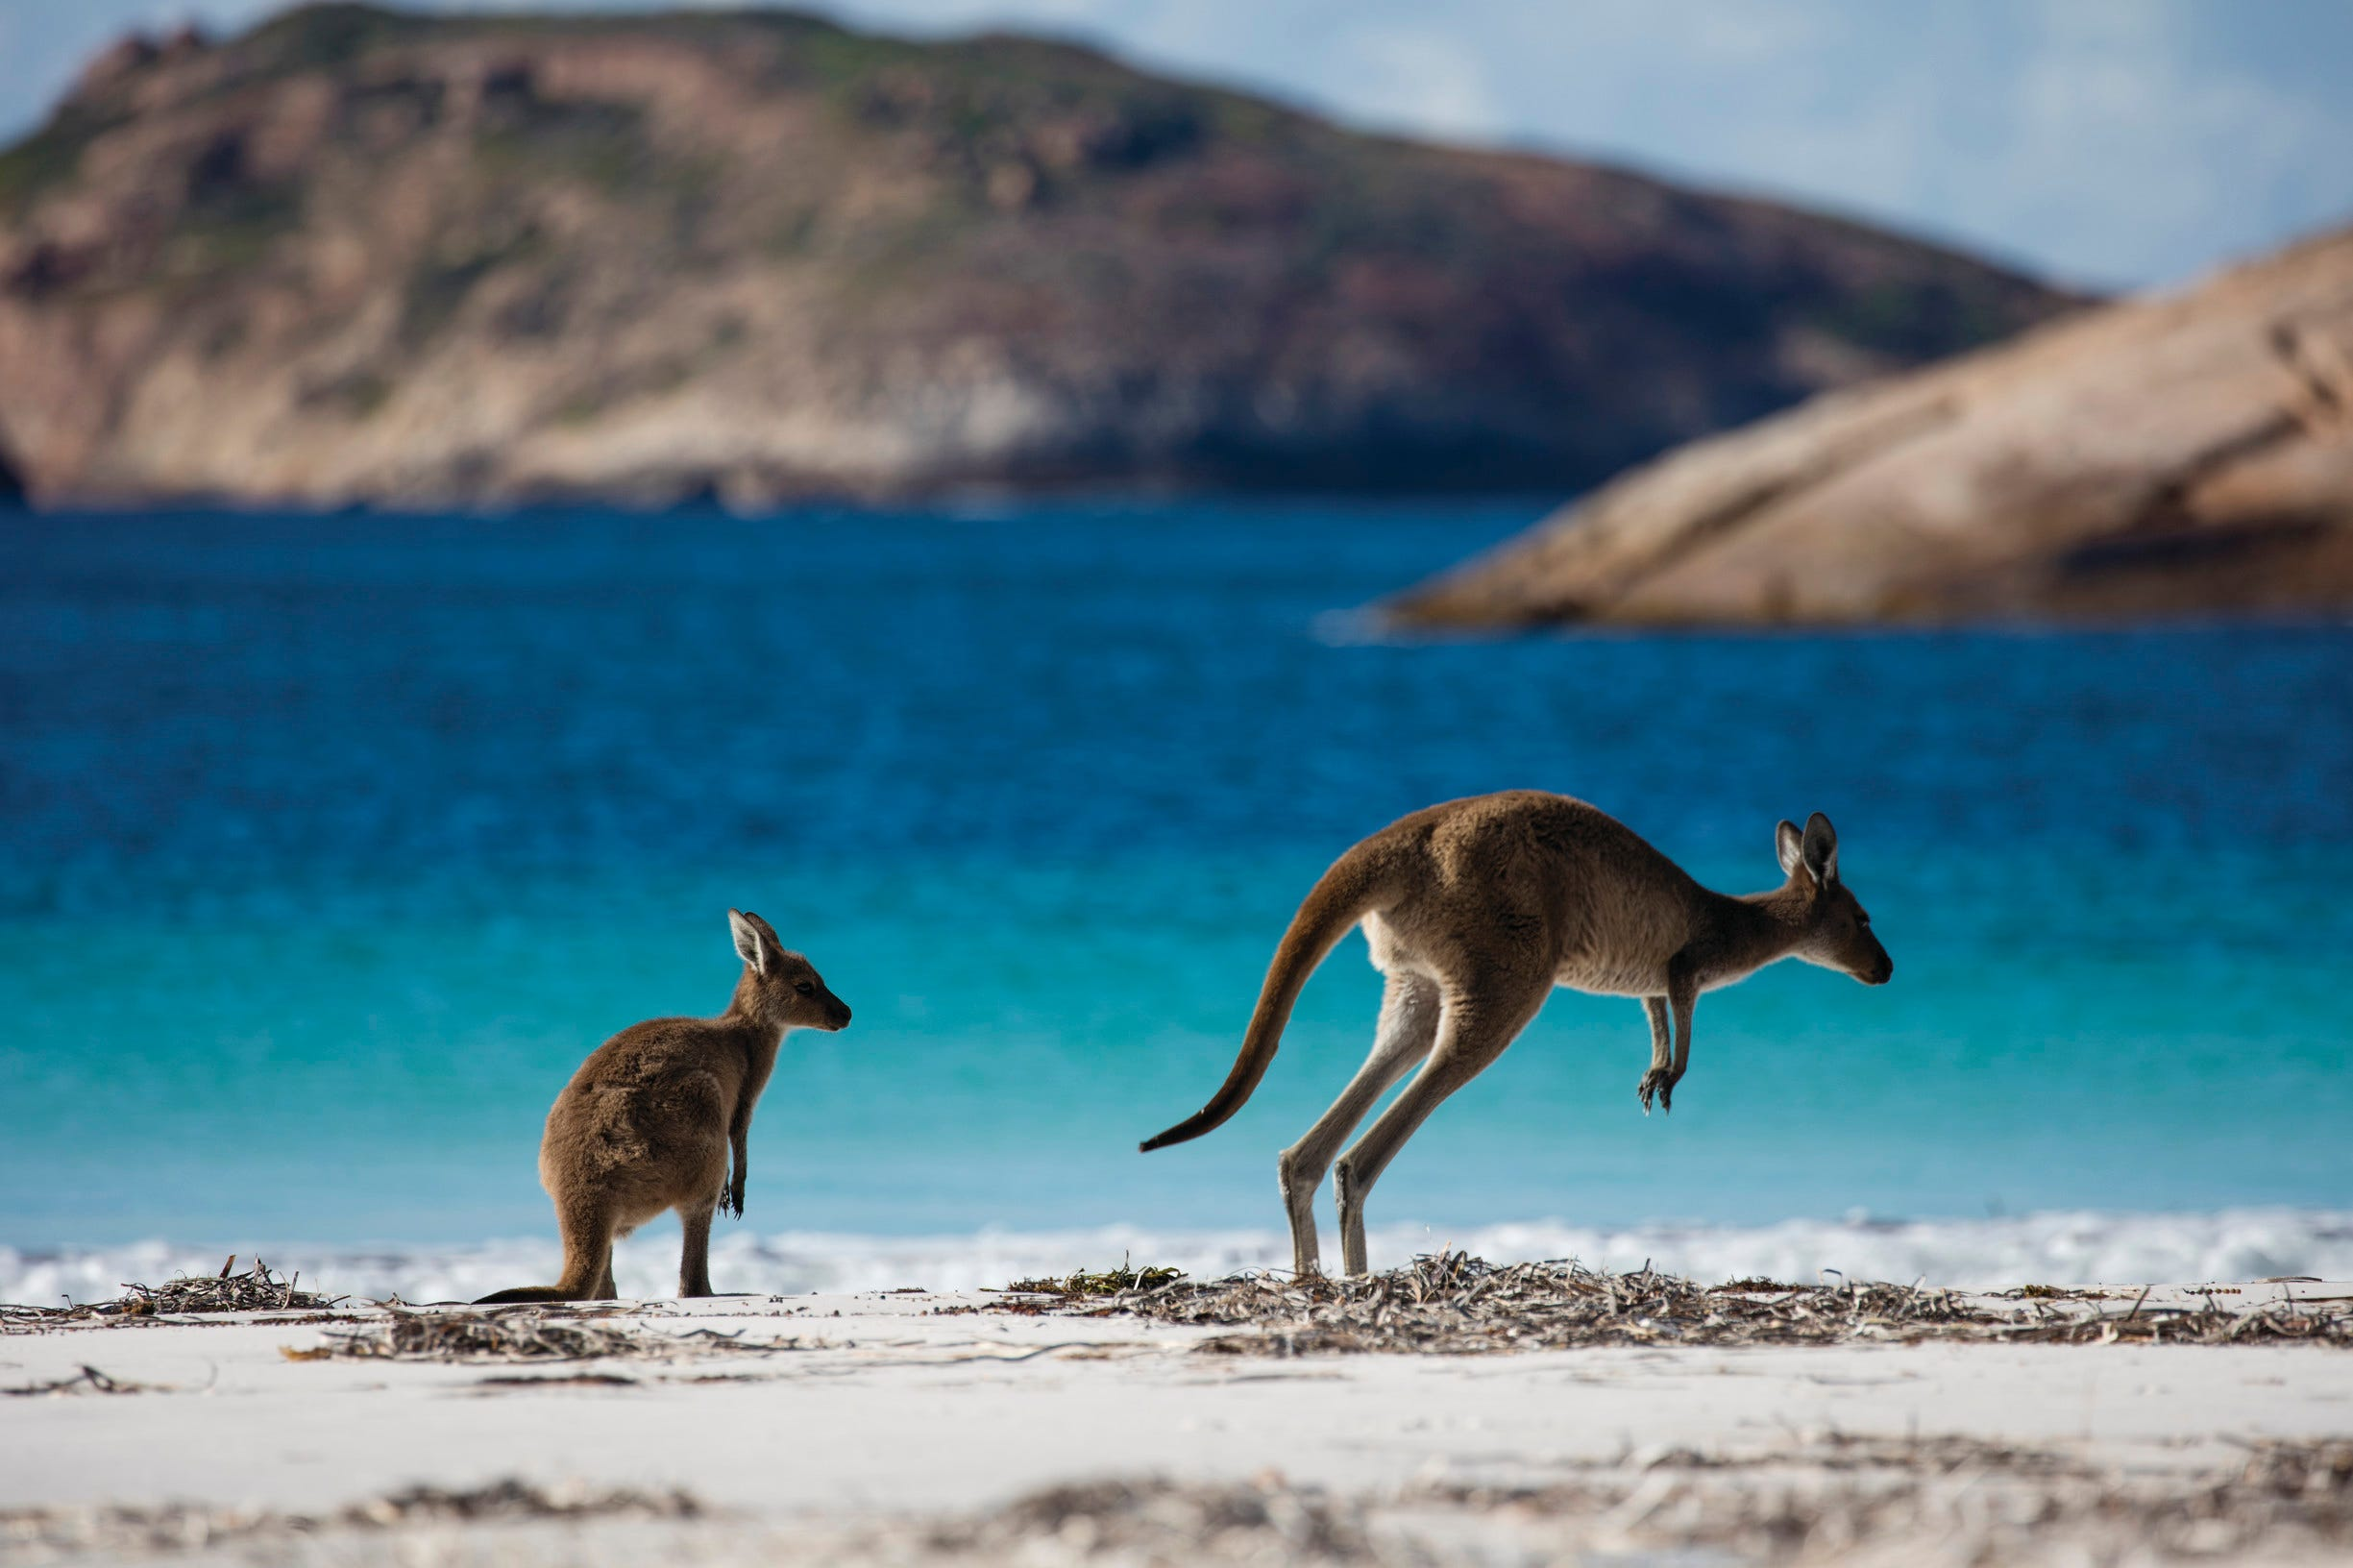 See remote Western Australia from afar with this photo tour